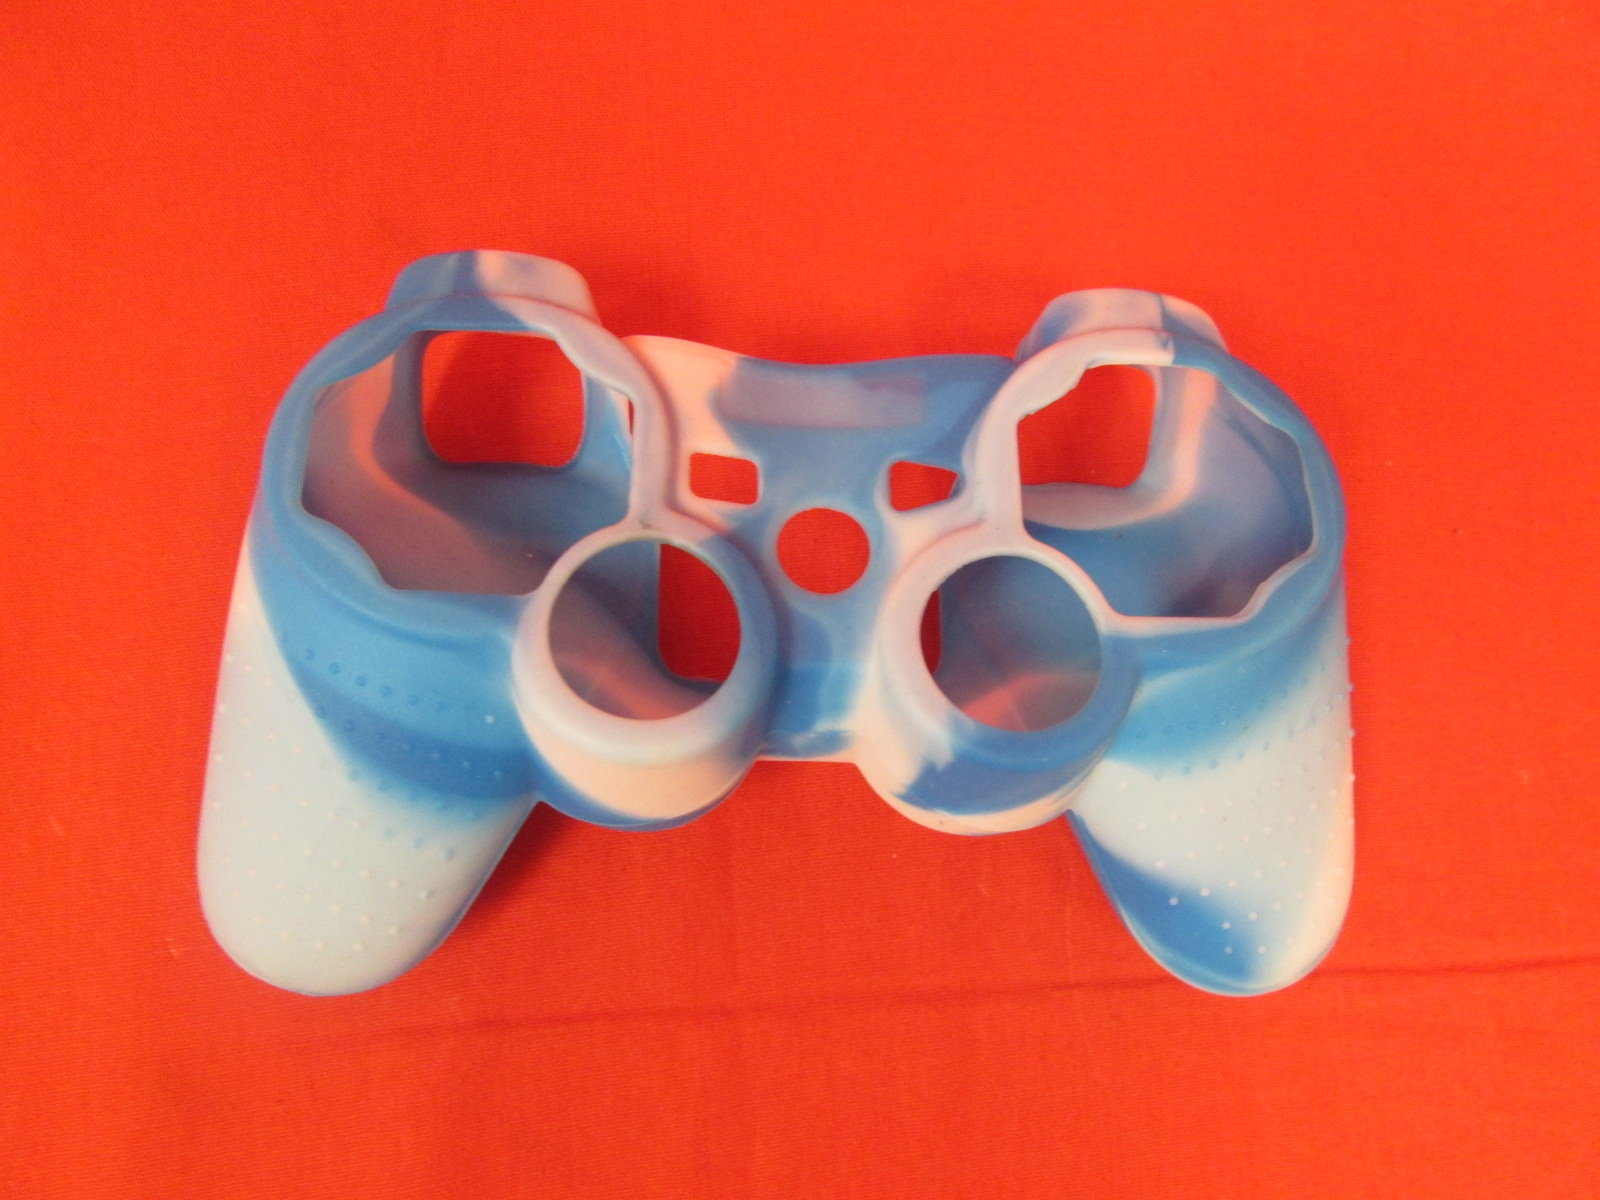 Neoprene Case Cover Skin For PlayStation 3 Controller Blue And White